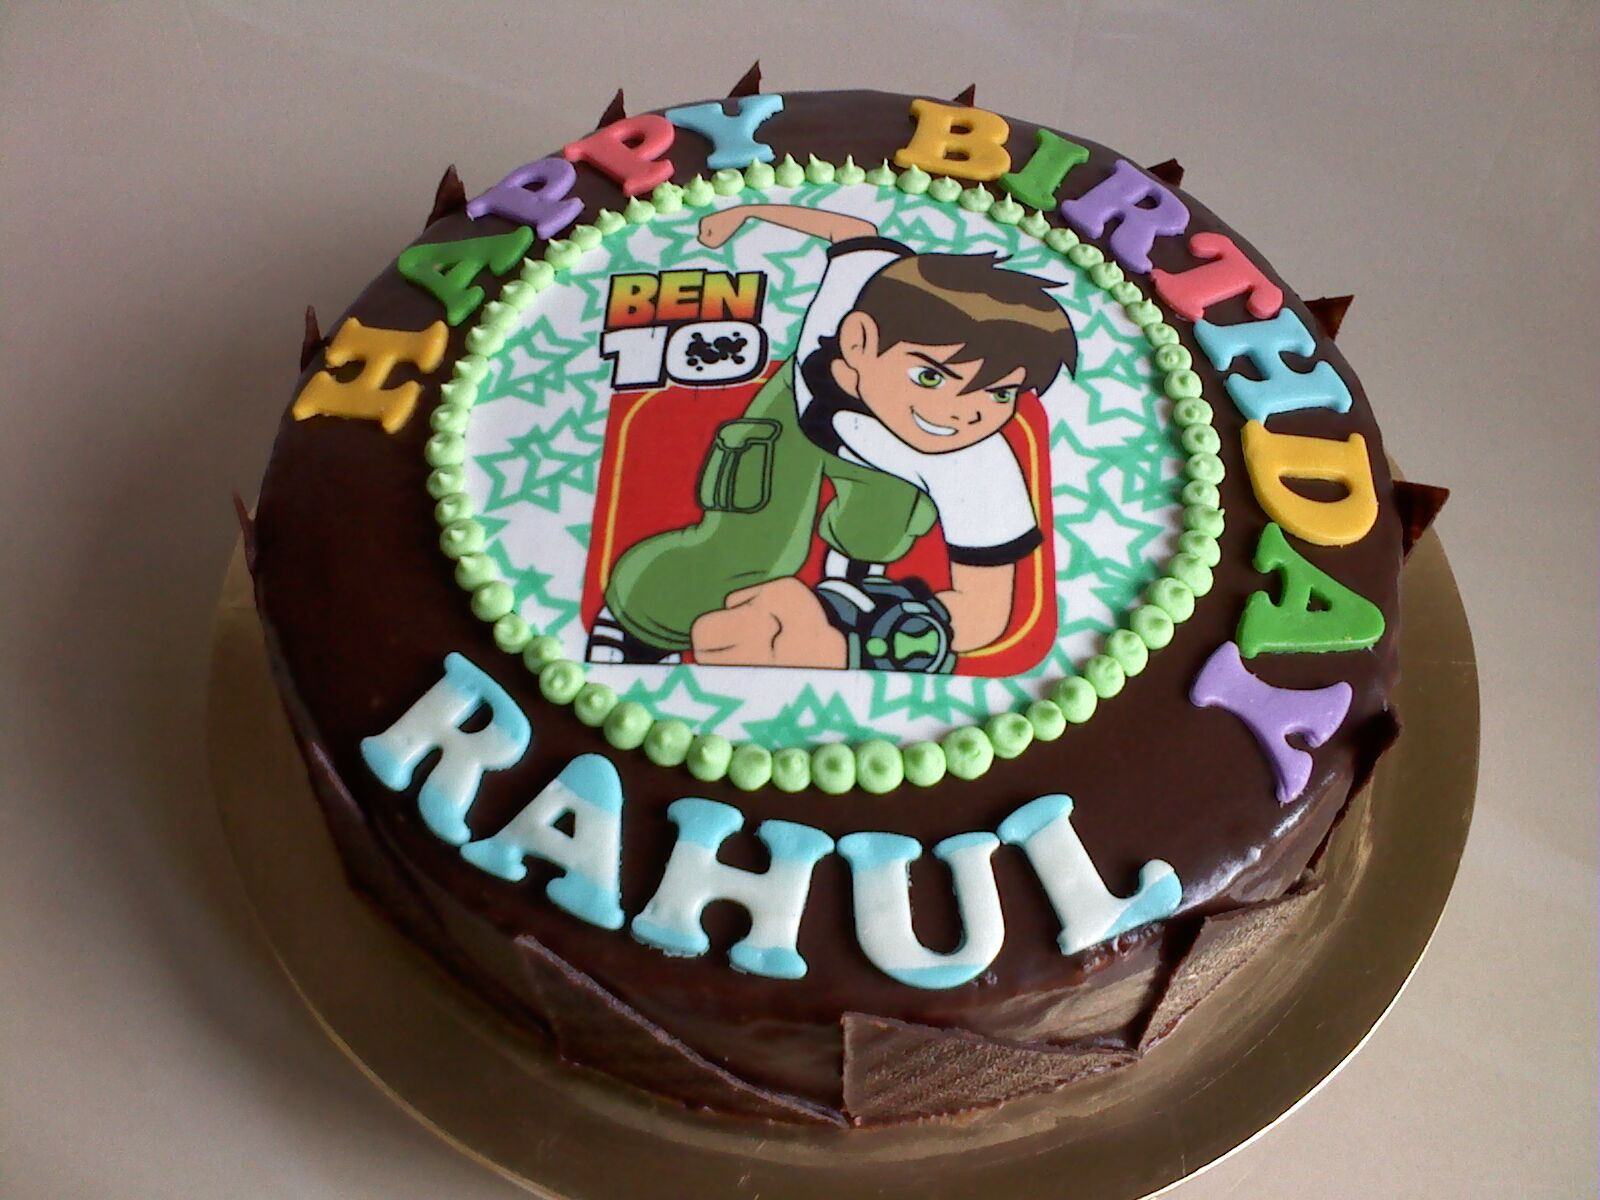 Birthday Cake Images Rahul : Vim s Cake Delight: Ben 10